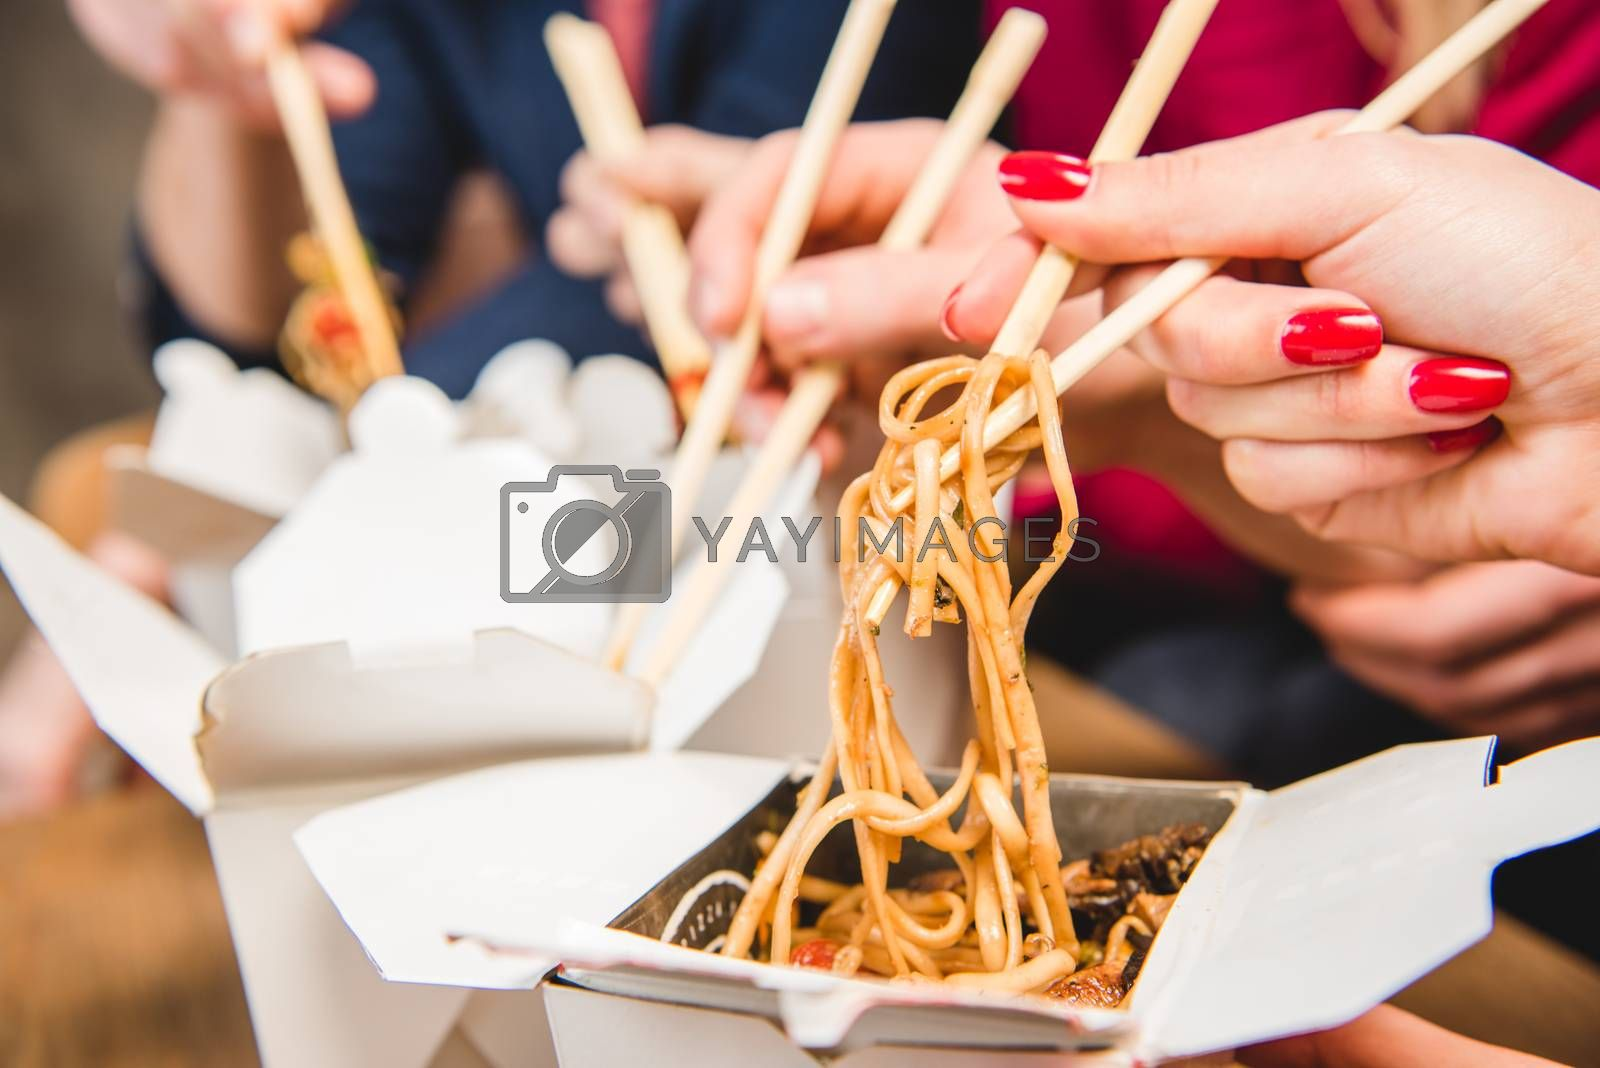 Close-up view of people eating noodles with chopsticks